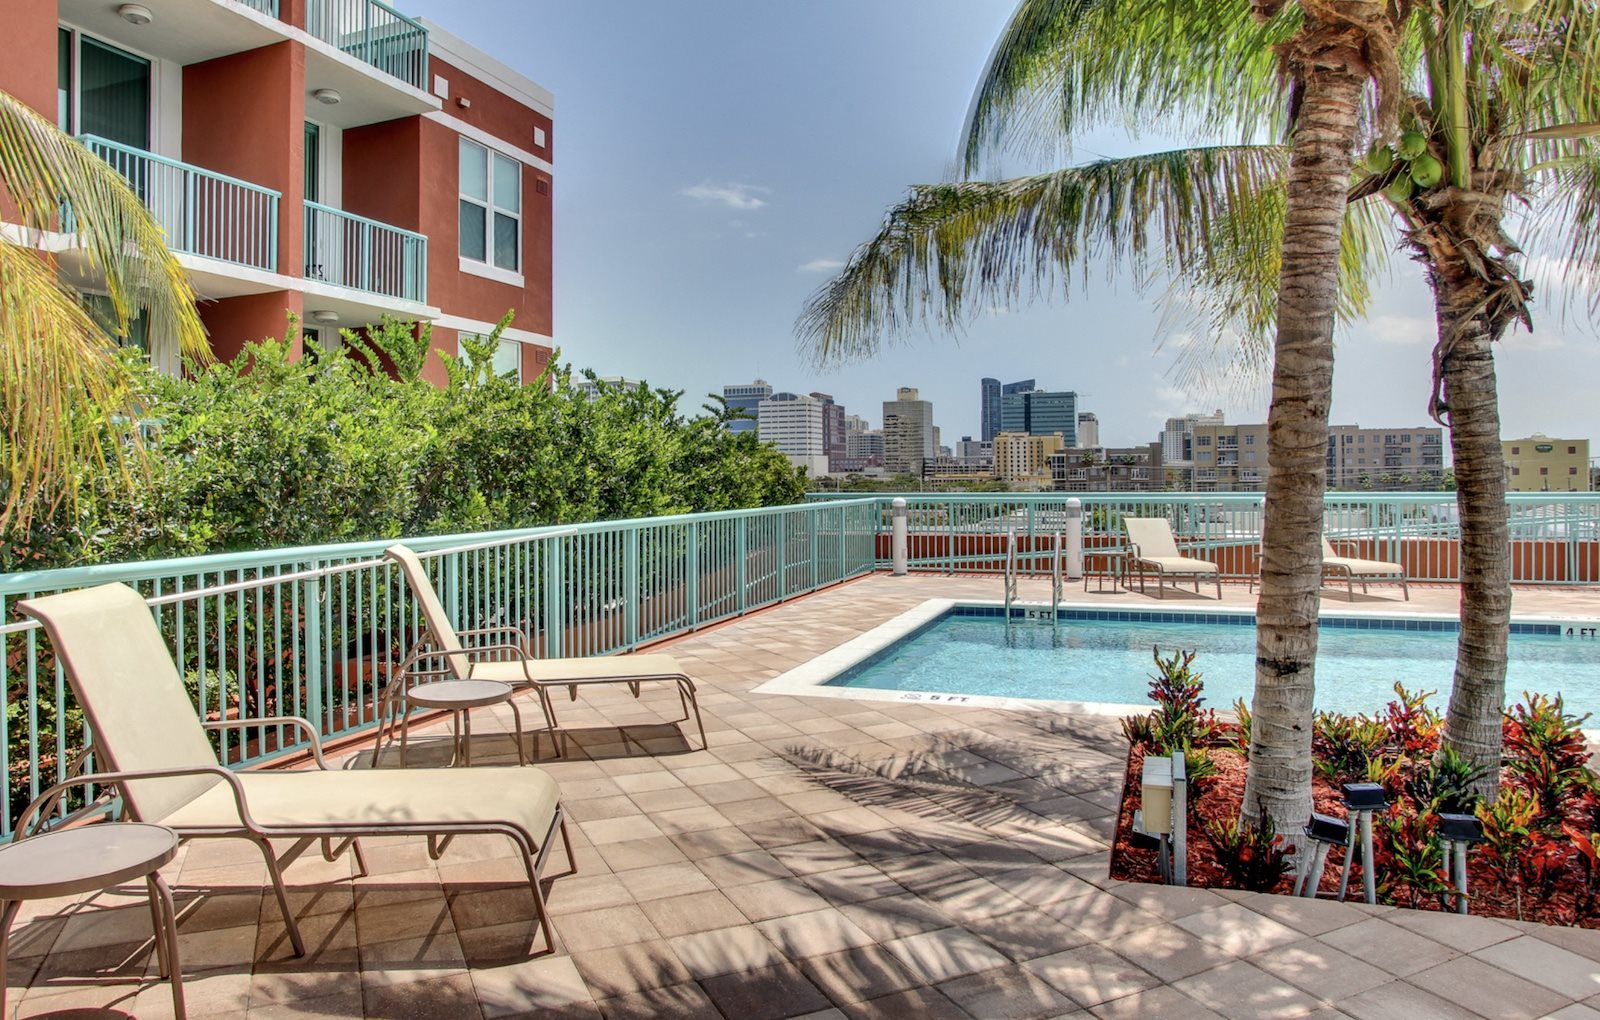 Progresso Point Apartments in Fort Lauderdale, FL Rooftop pool